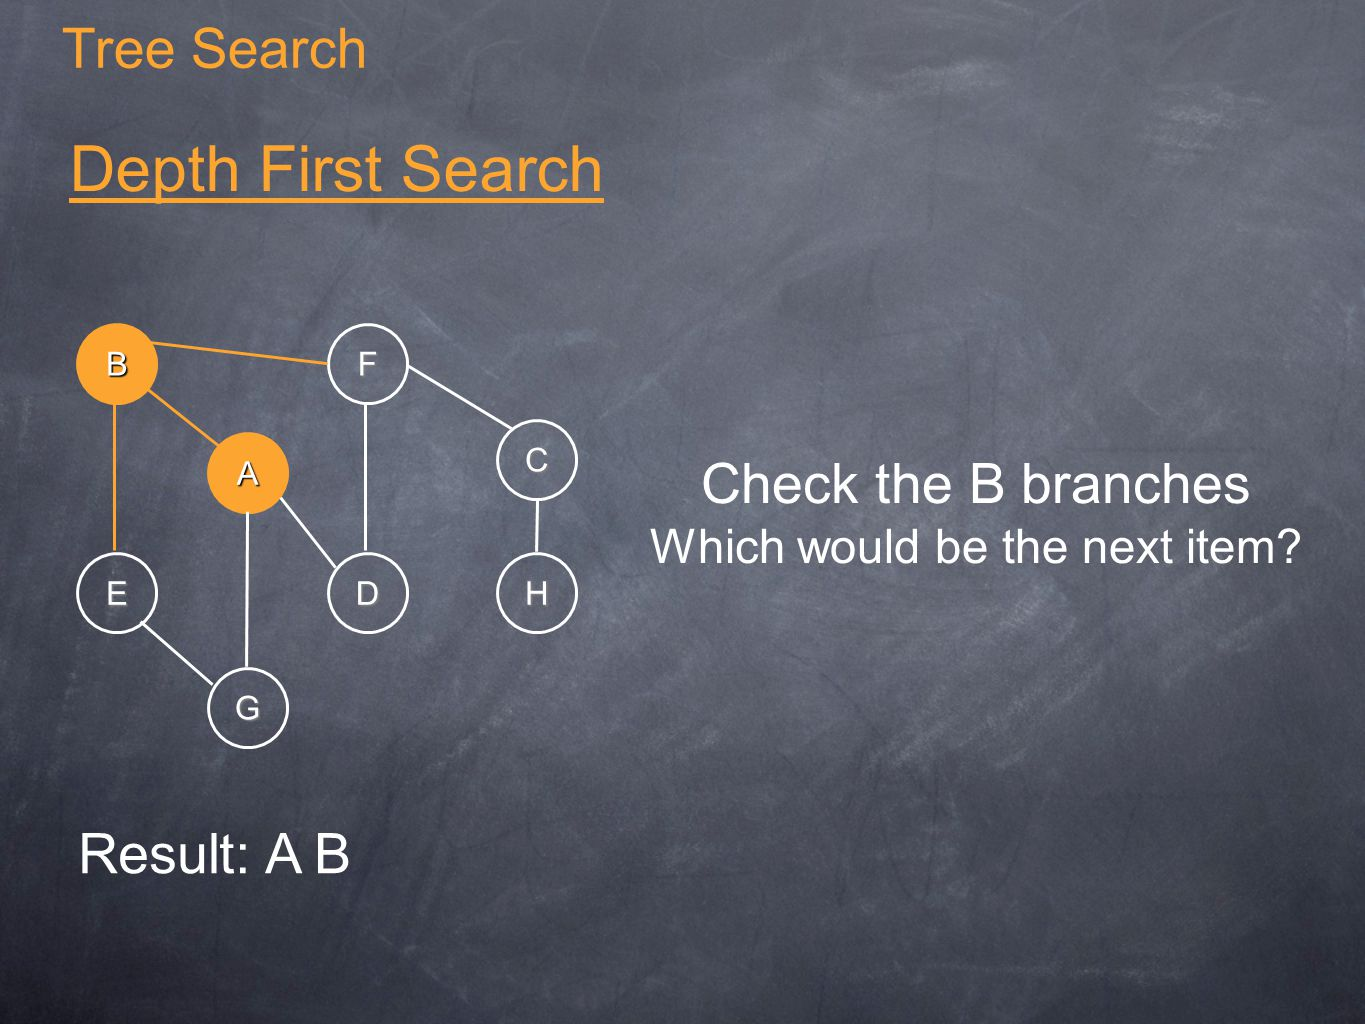 Tree Search A B C G E F DH Result: A B Depth First Search Check the B branches Which would be the next item?